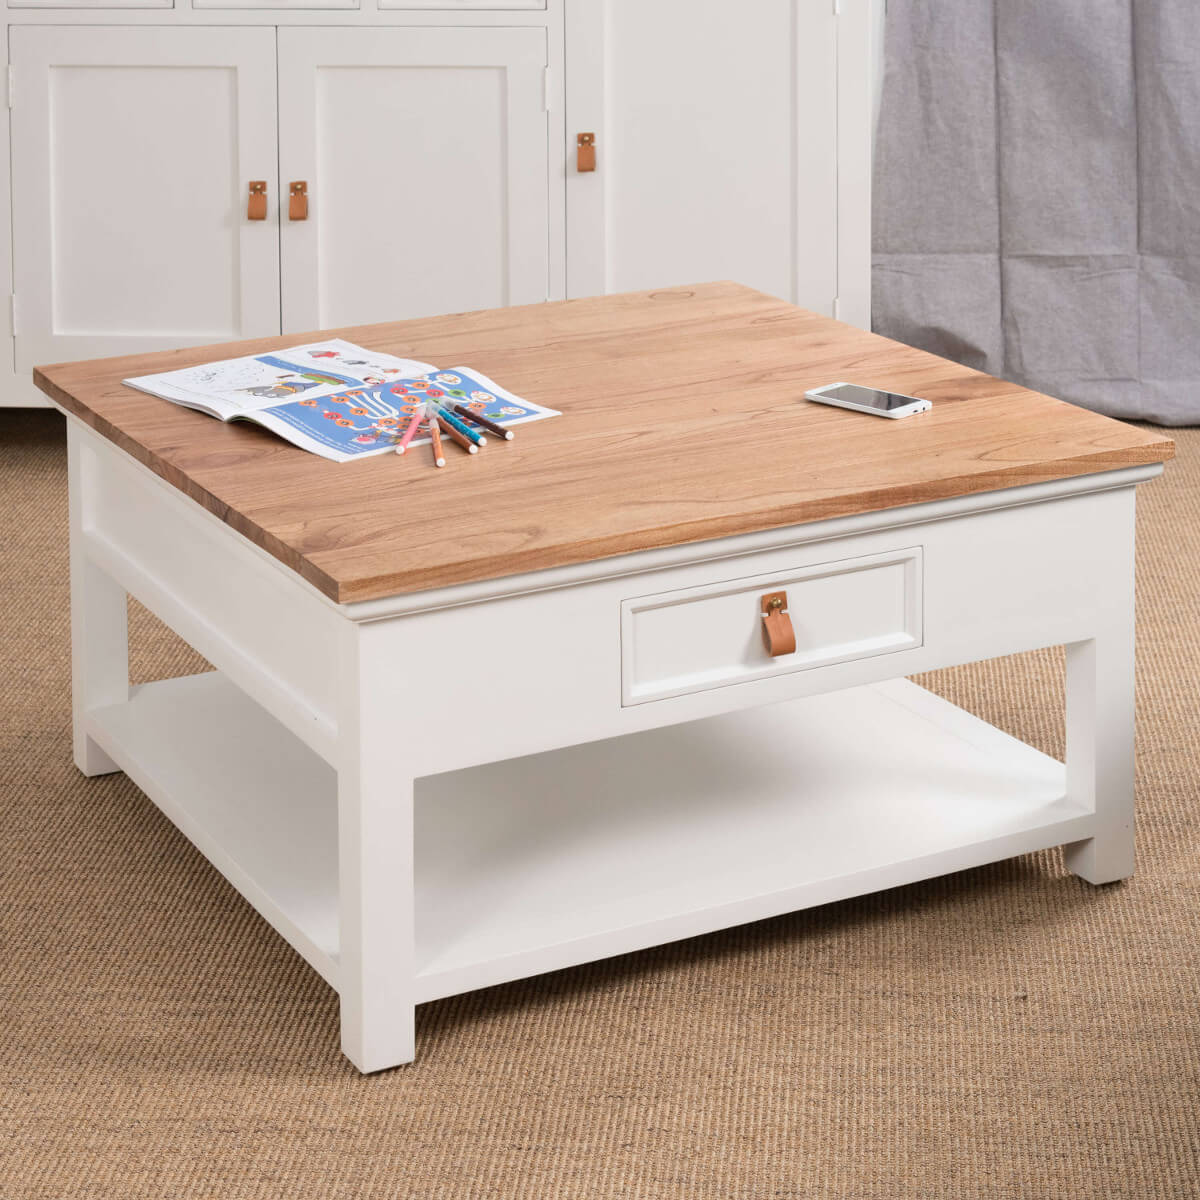 Table basse blanche table basse acajou carr e bois for Table basse en bois